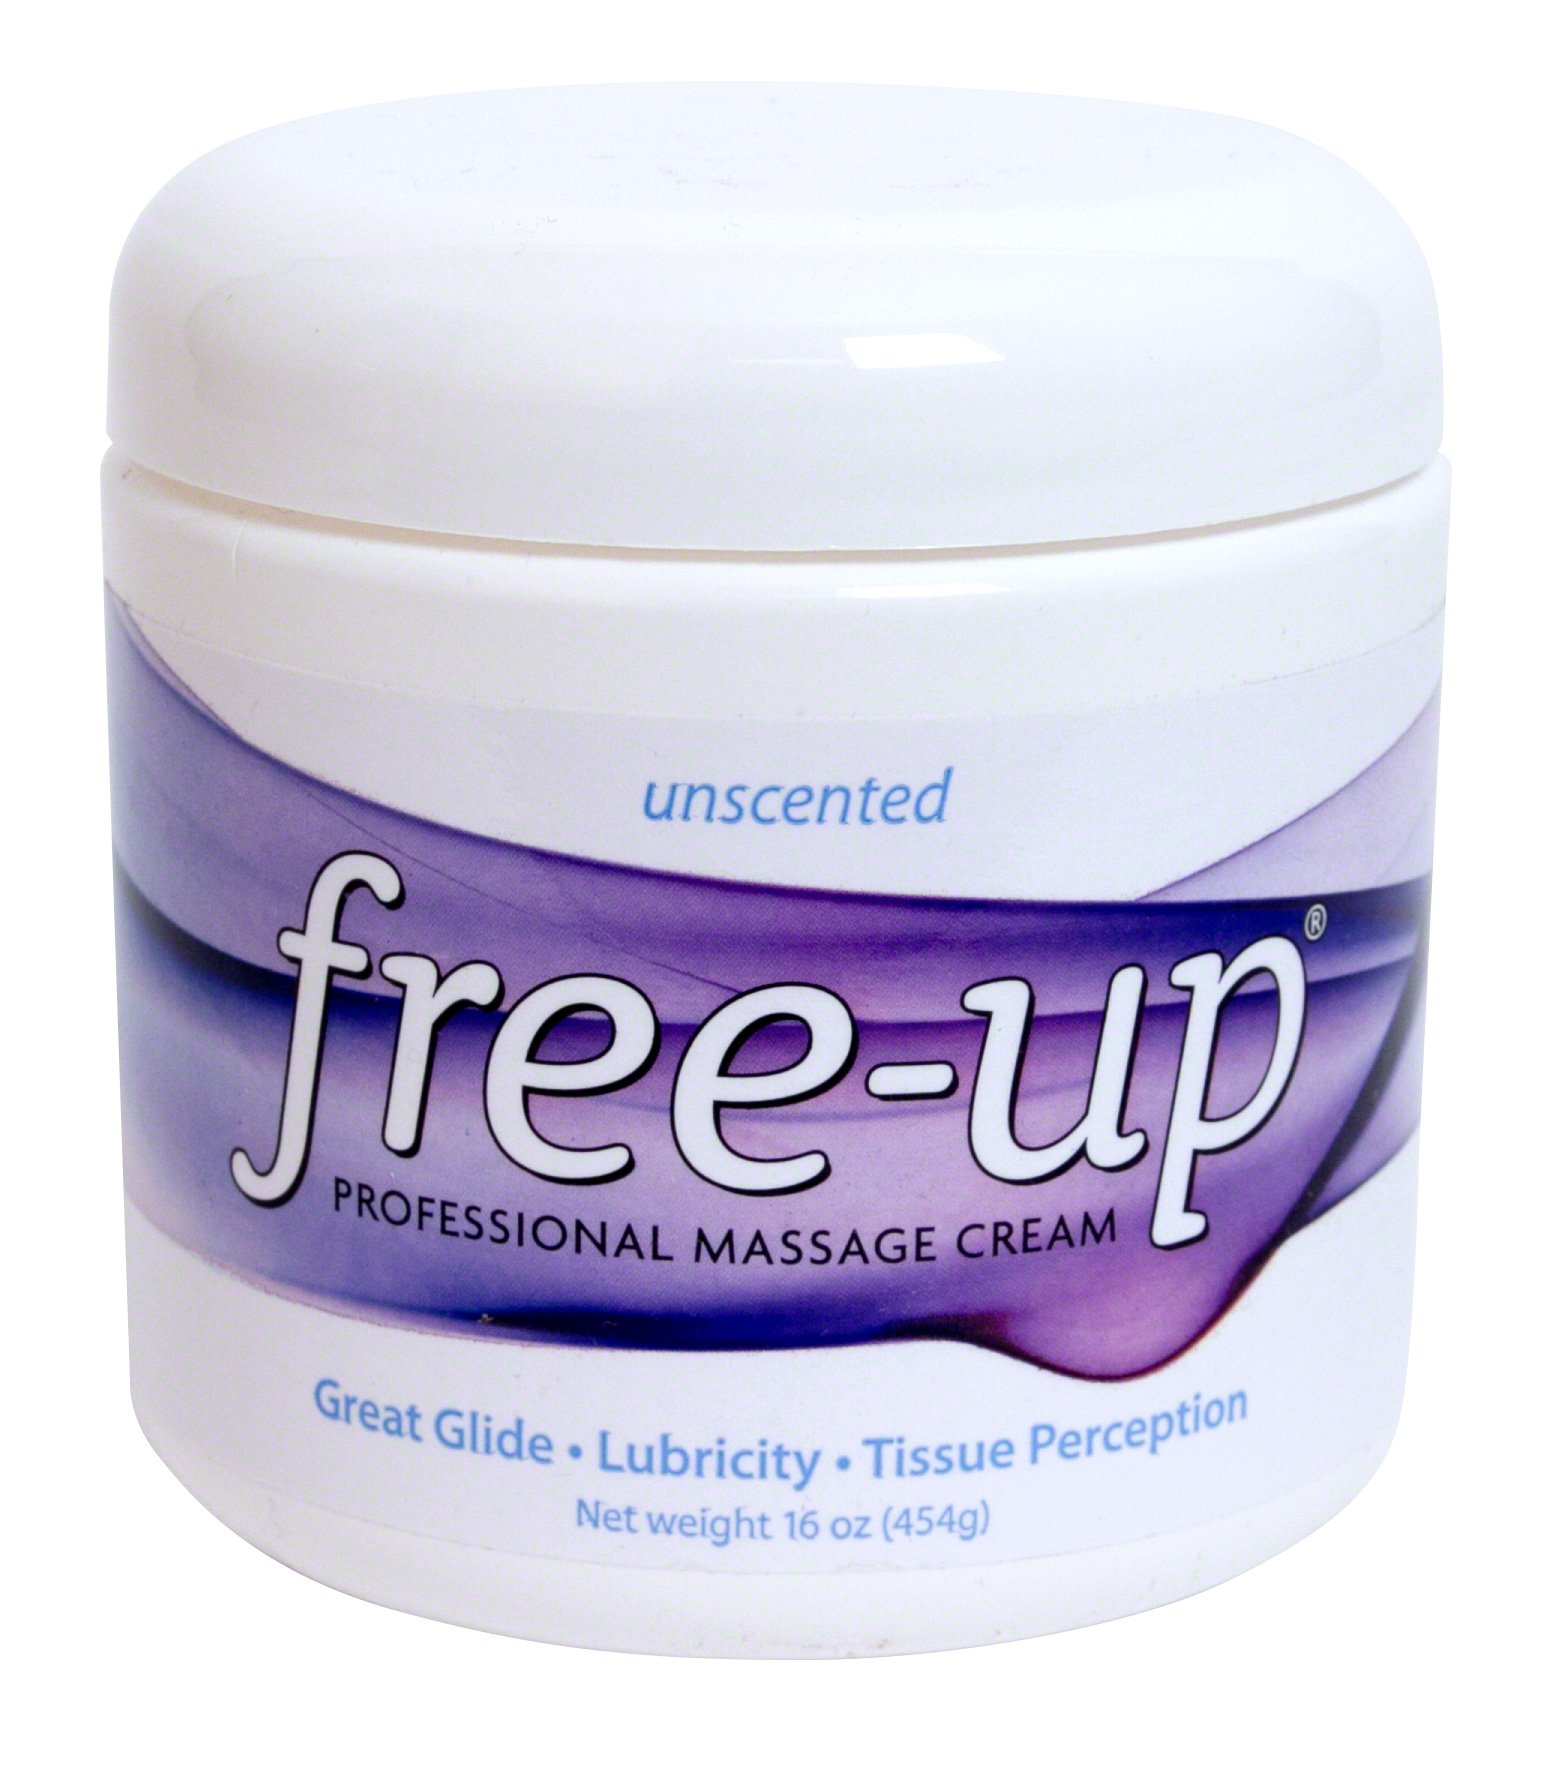 PrePak Products Freeup Massage Cream Unscented Net WT. 16 oz (454g) by PrePak Products